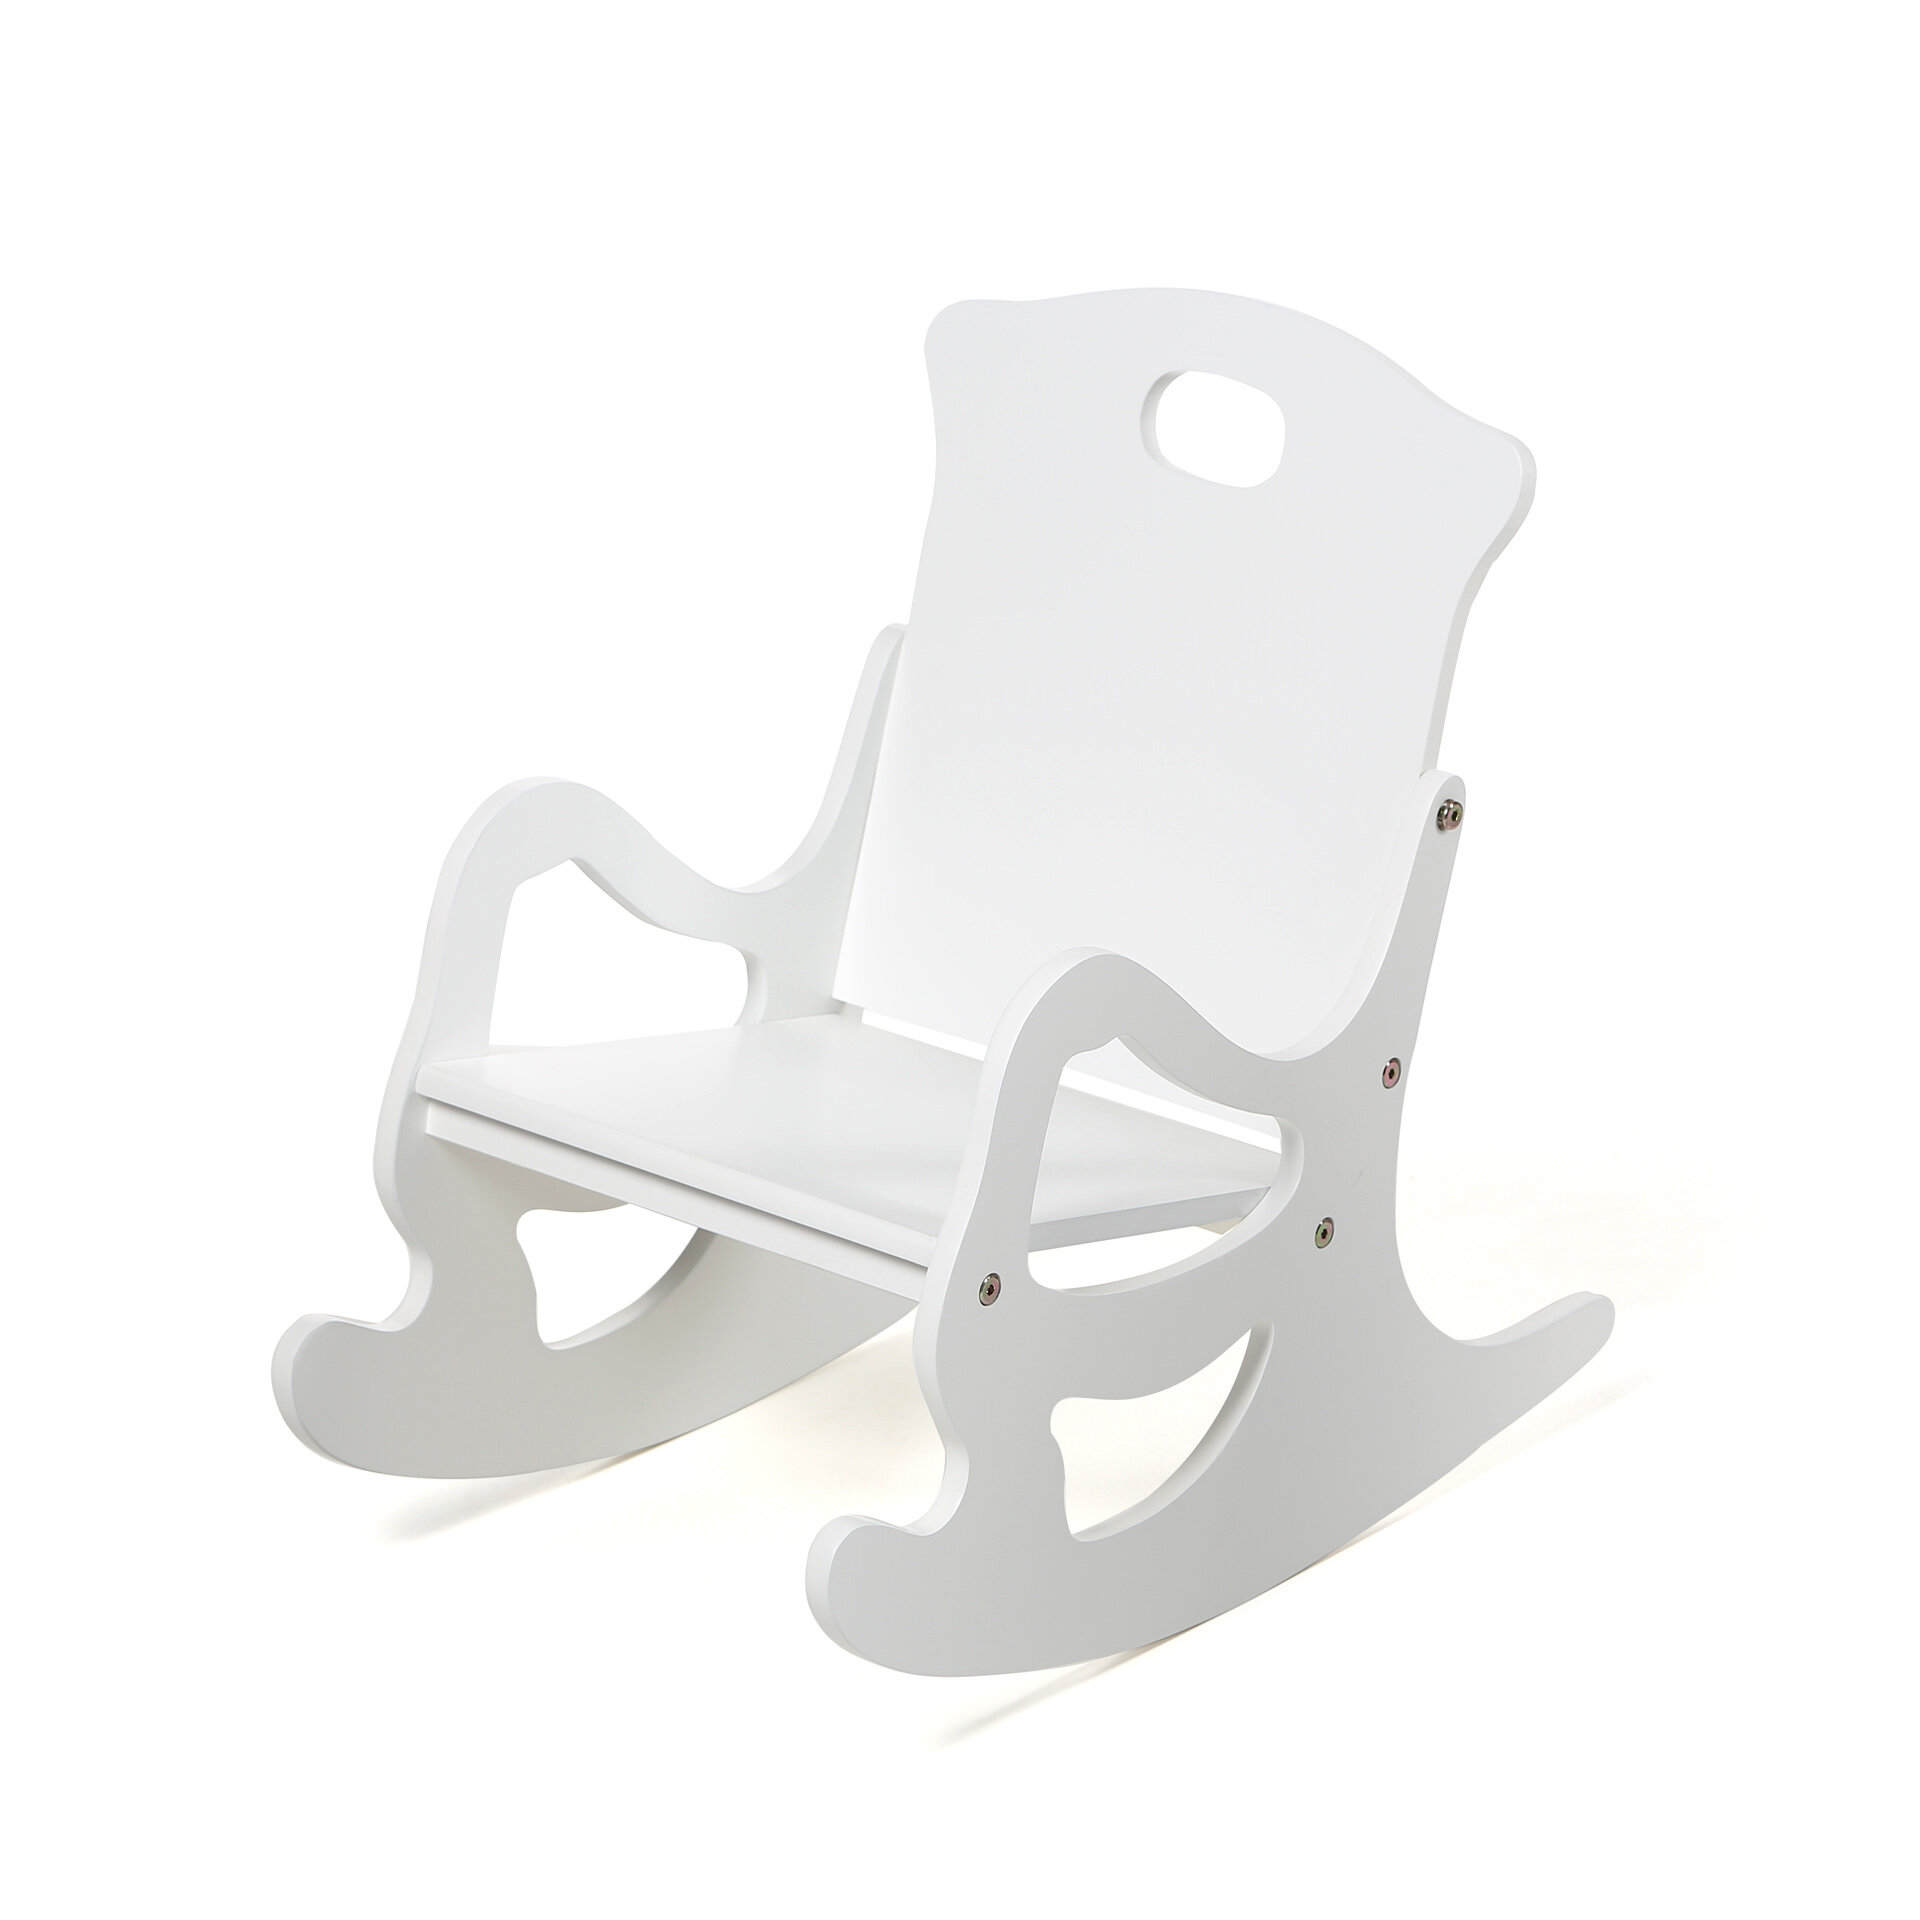 Peachy Damore Single Seat Puzzle Kids Rocking Chair Dailytribune Chair Design For Home Dailytribuneorg